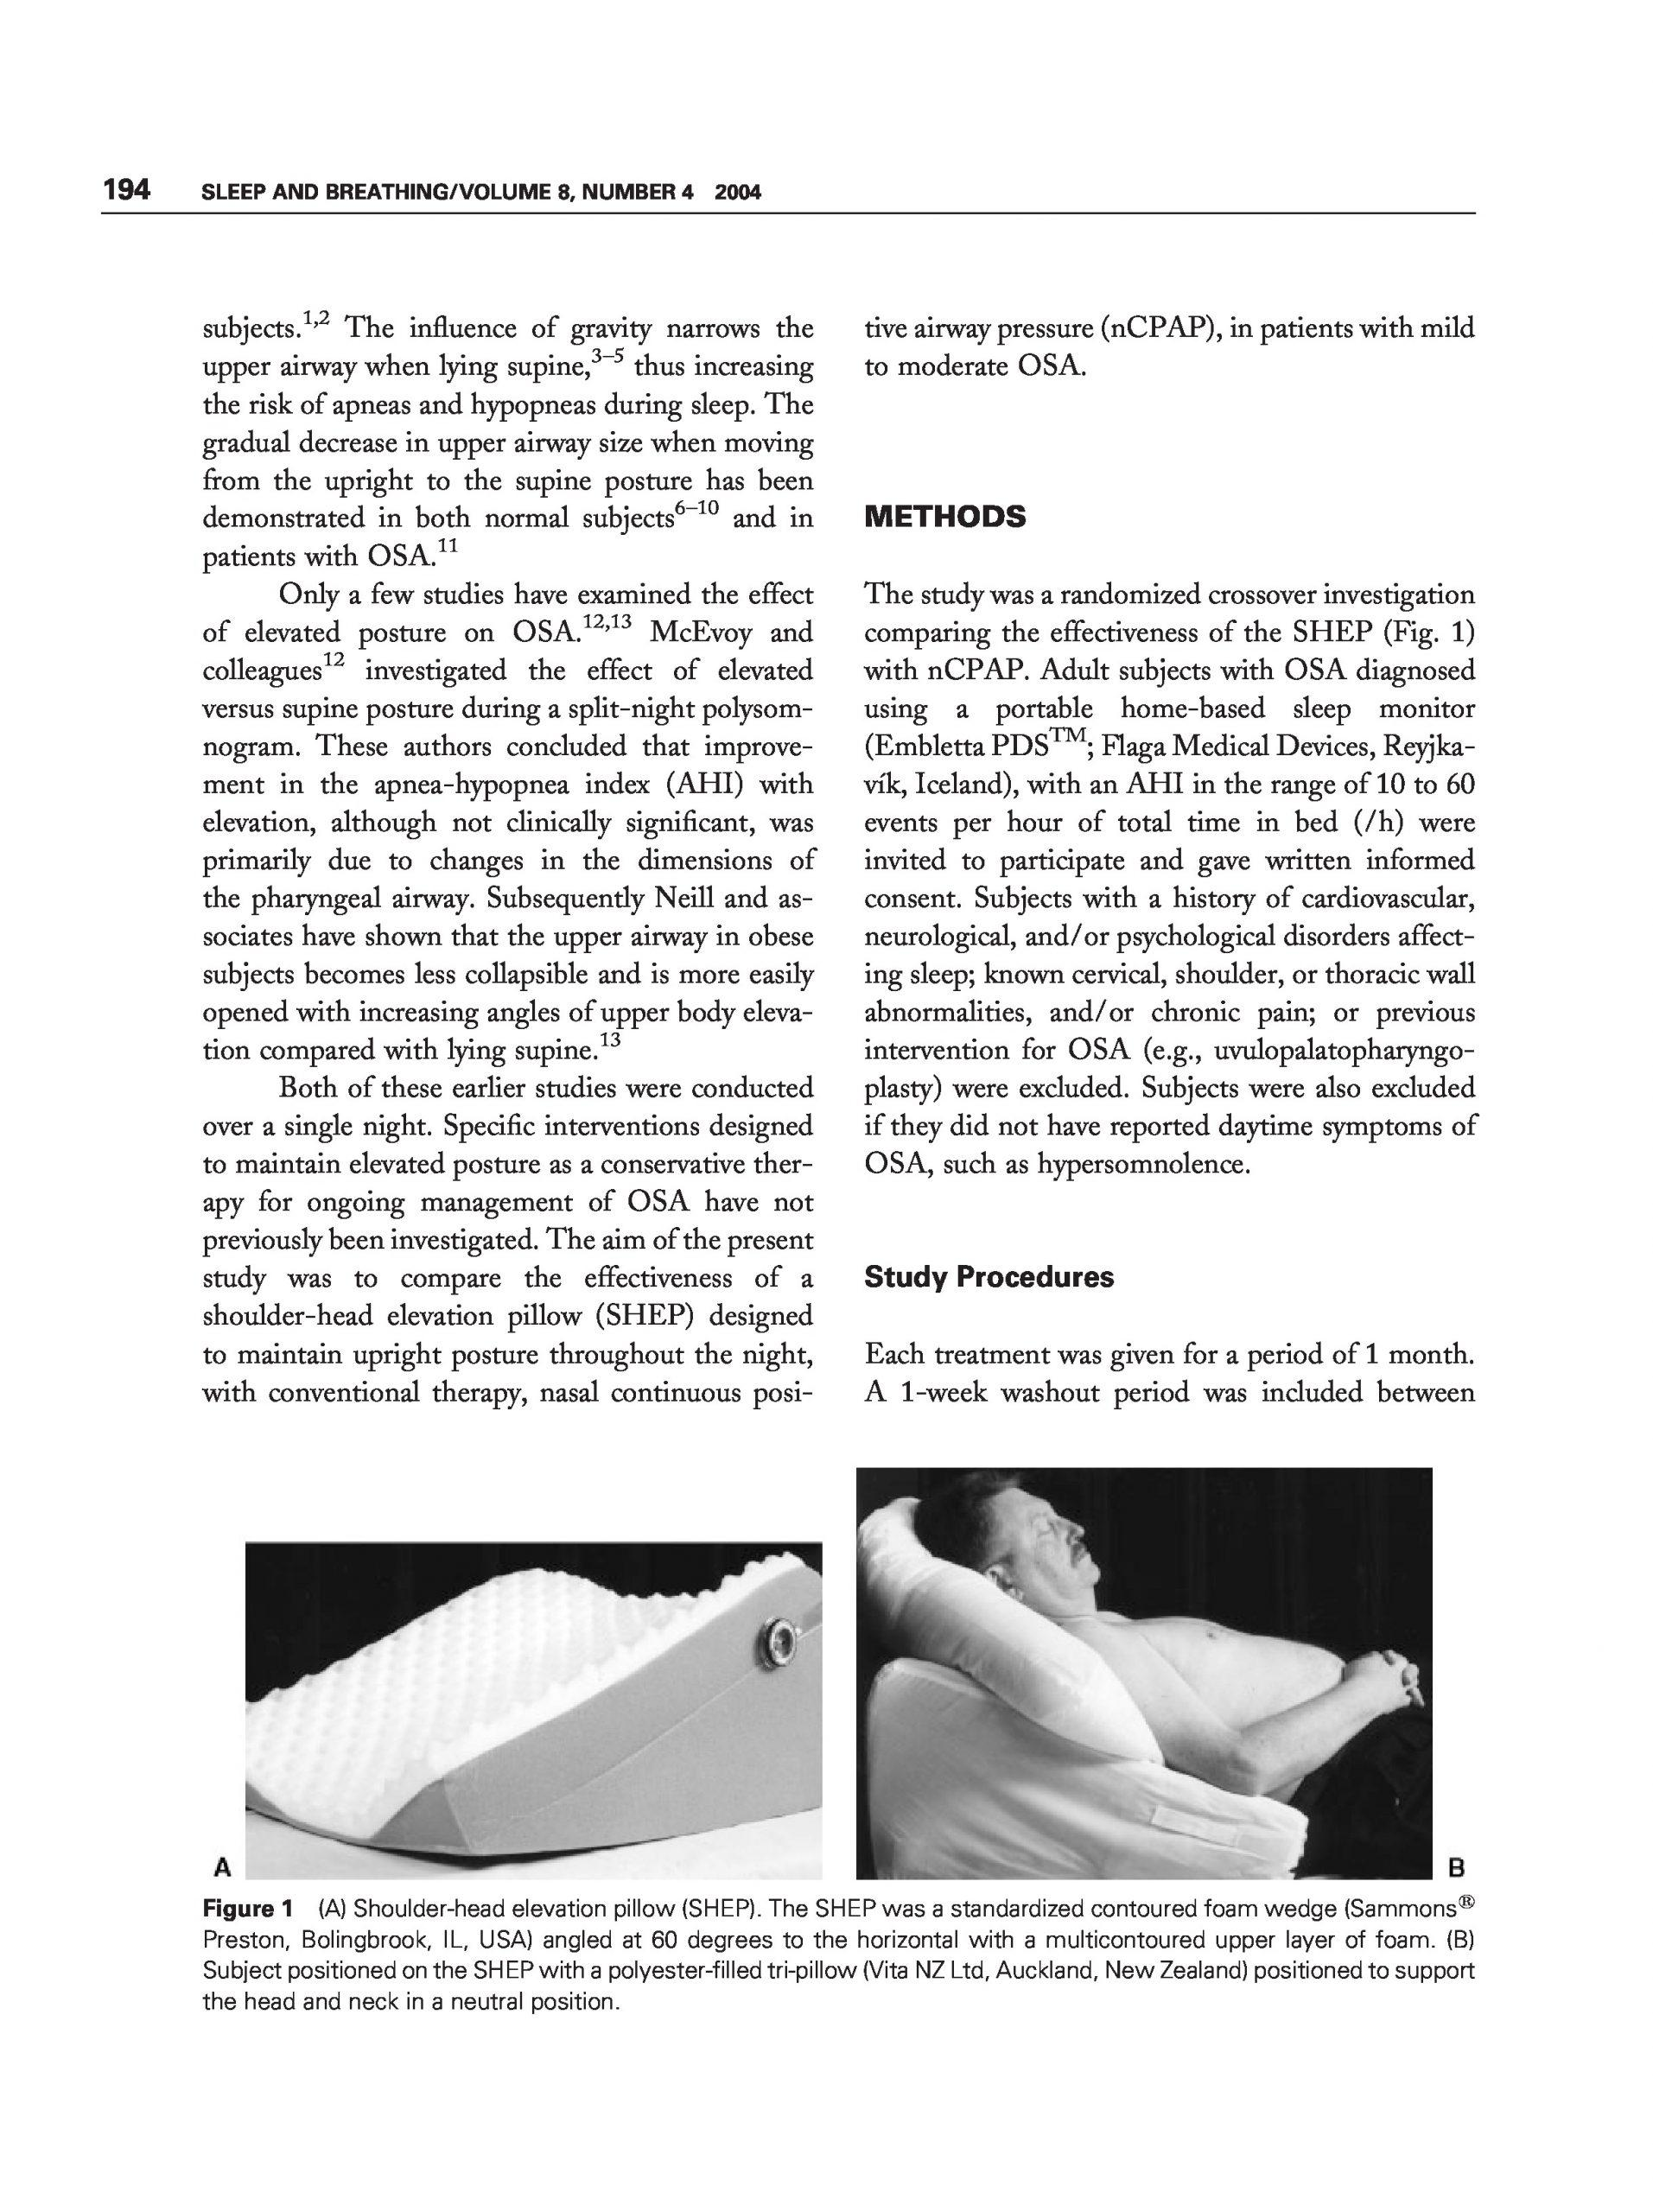 Elevated Posture for the Management page 1 scaled